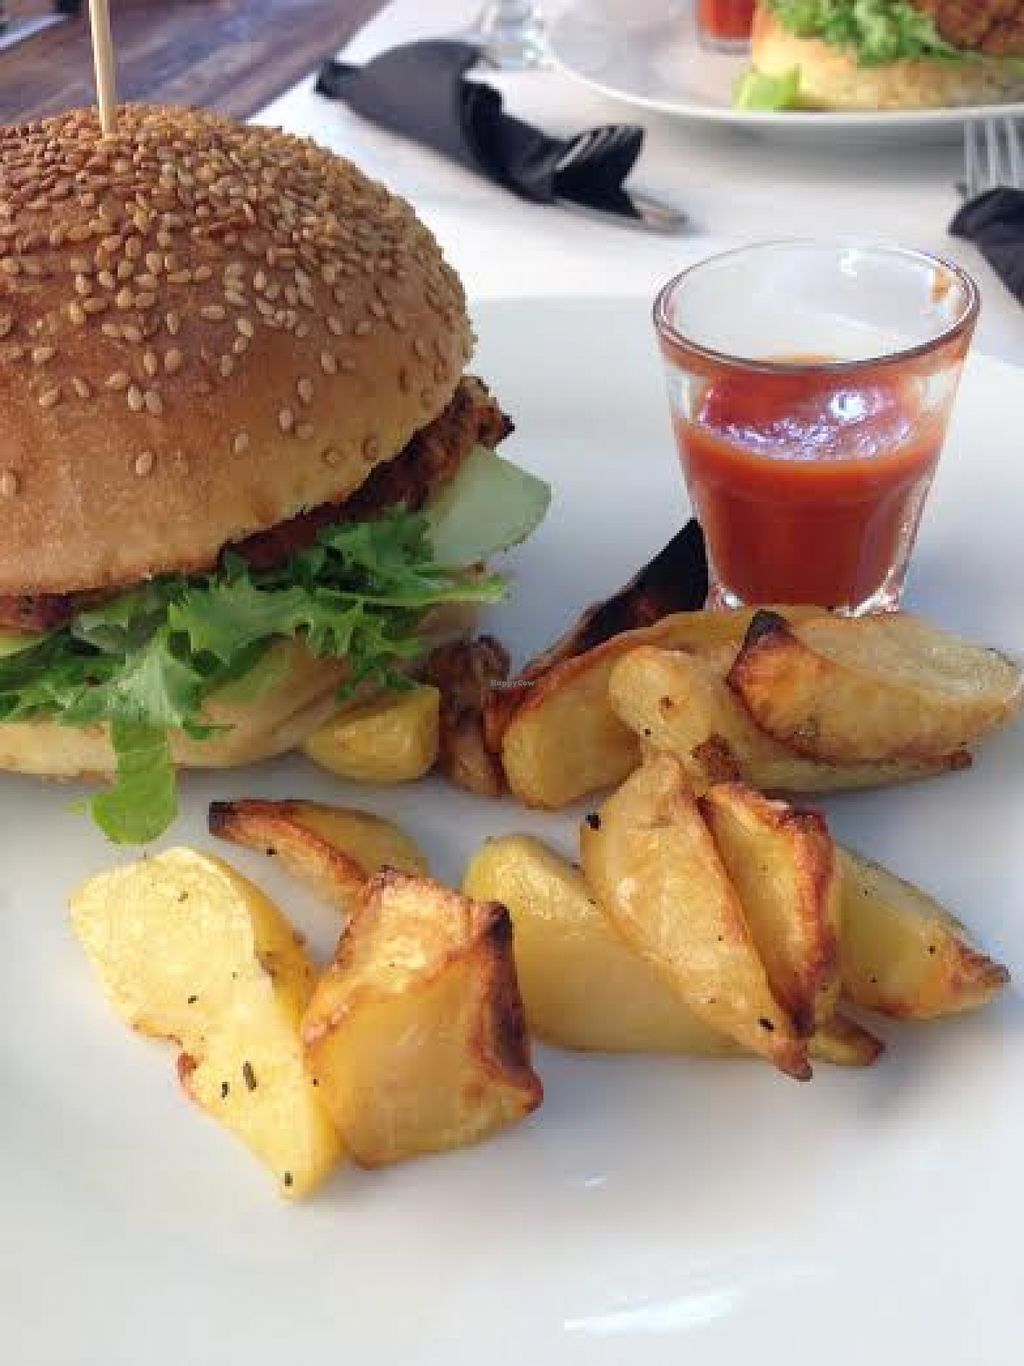 "Photo of REMOVED: Rendez Vous Ristorante  by <a href=""/members/profile/Lesley%20Anne%20Jeavons"">Lesley Anne Jeavons</a> <br/>Gorgeous vegan burger, baked potato chips and delicious homemade tomato sauce at Rendez Vous Ristorante <br/> August 17, 2015  - <a href='/contact/abuse/image/50885/114013'>Report</a>"